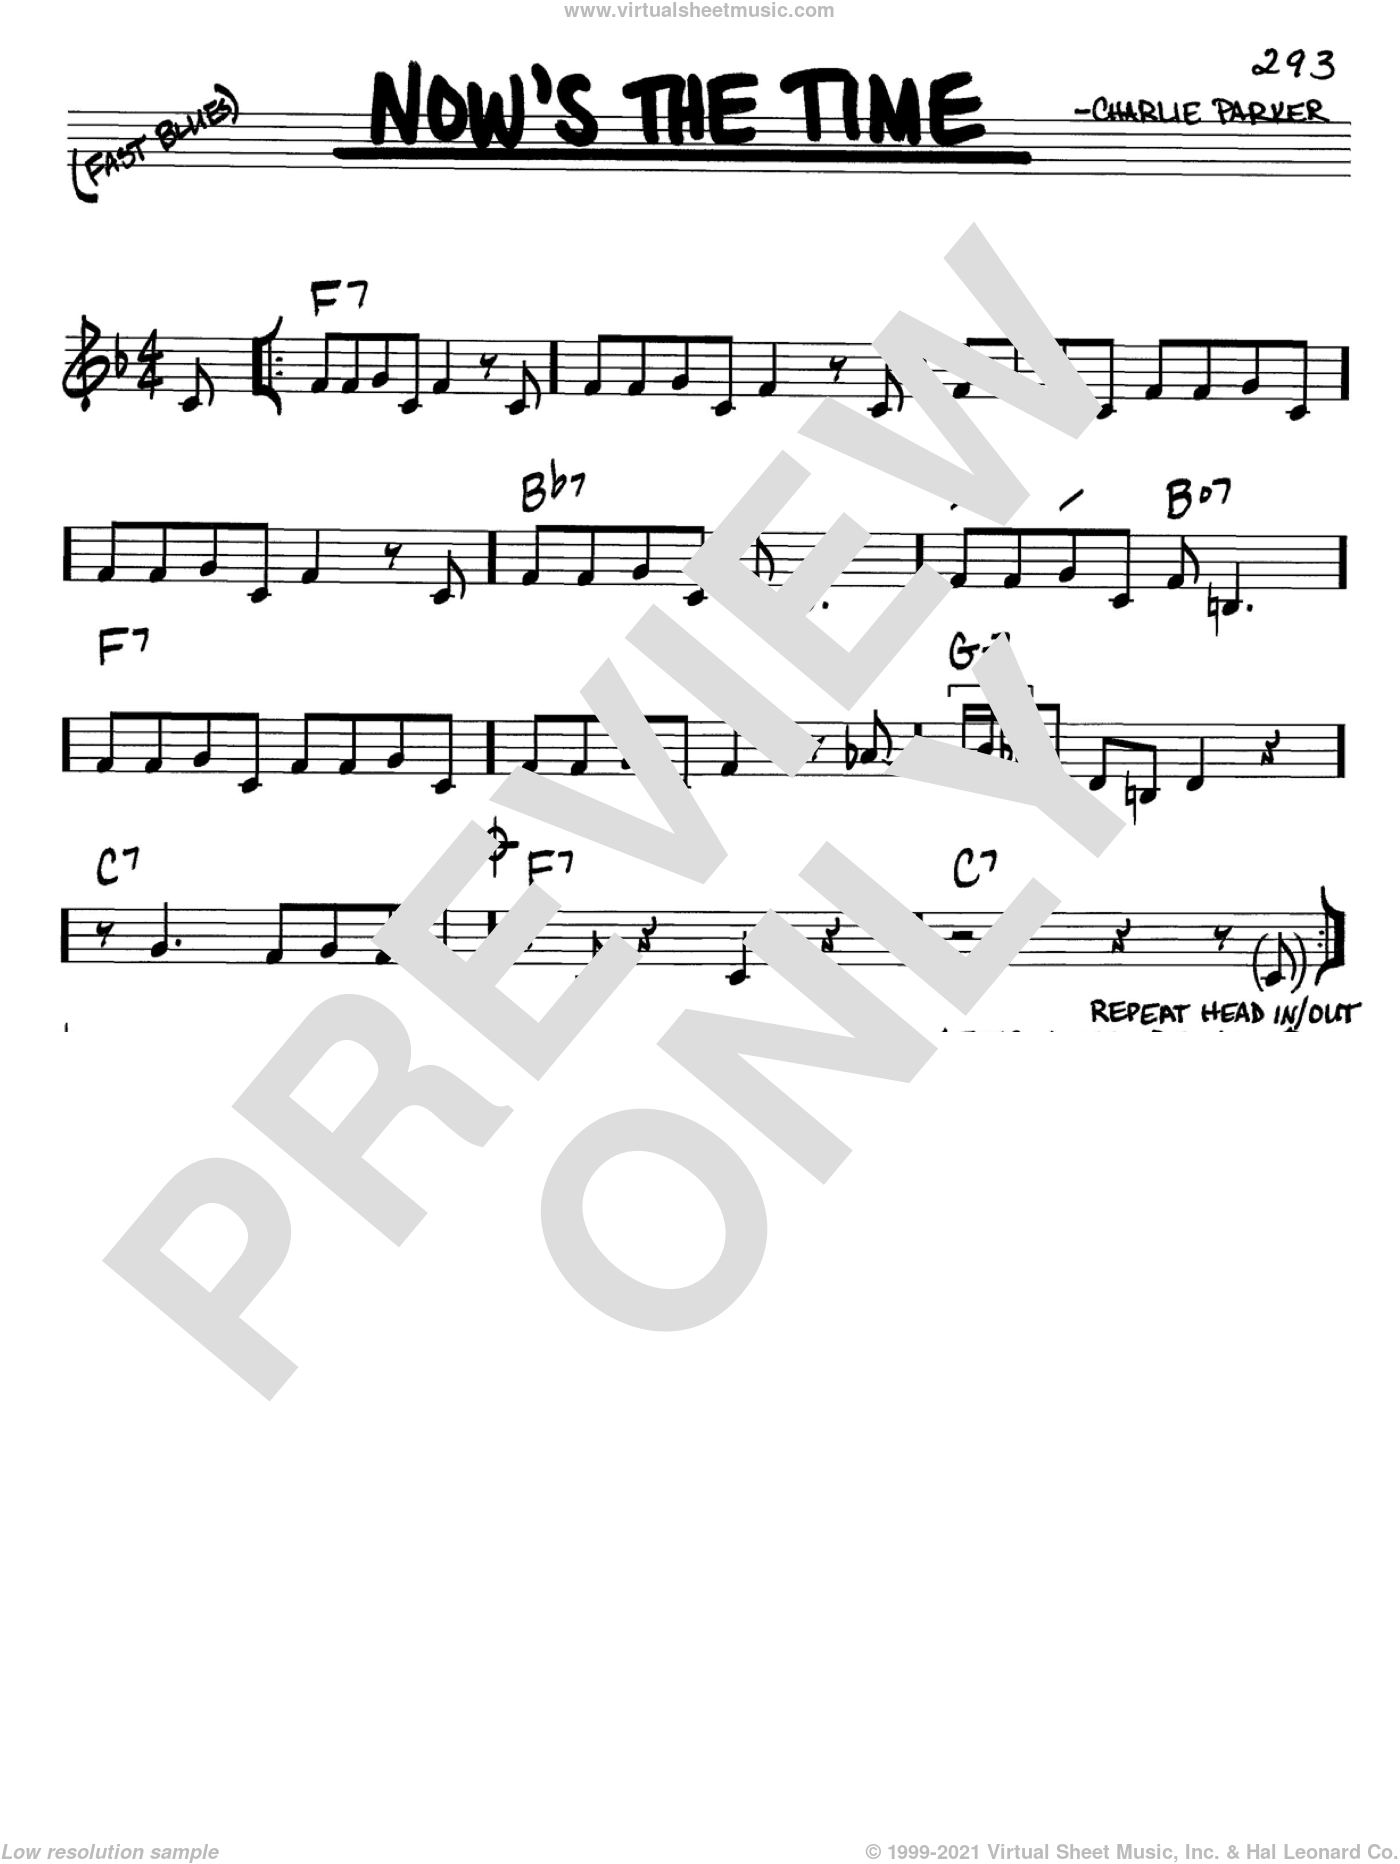 Now's The Time sheet music for voice and other instruments (C) by Charlie Parker